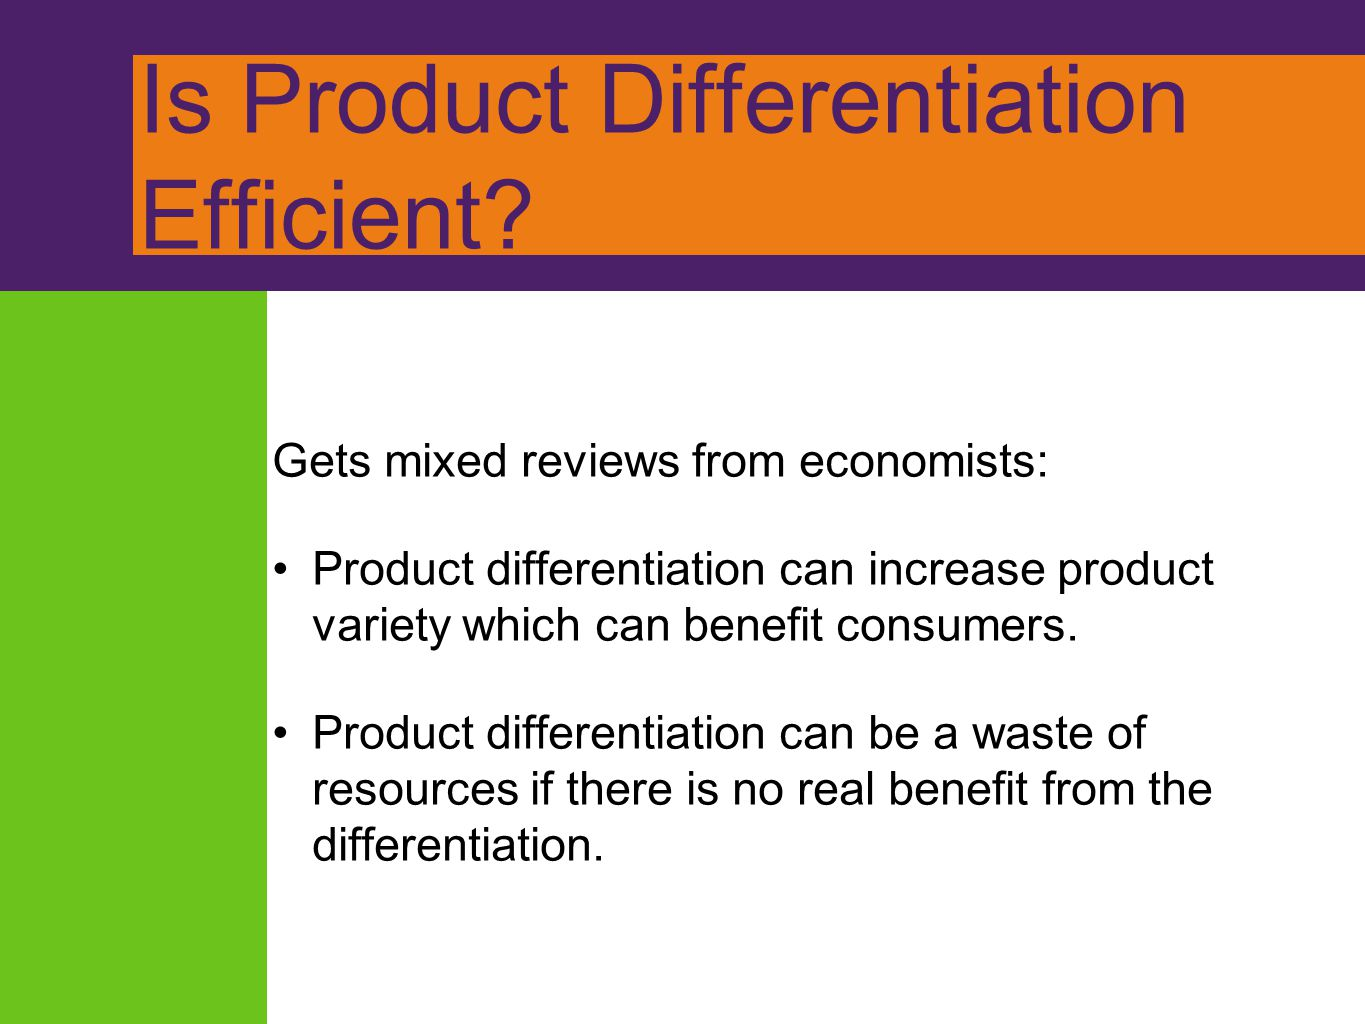 Is Product Differentiation Efficient